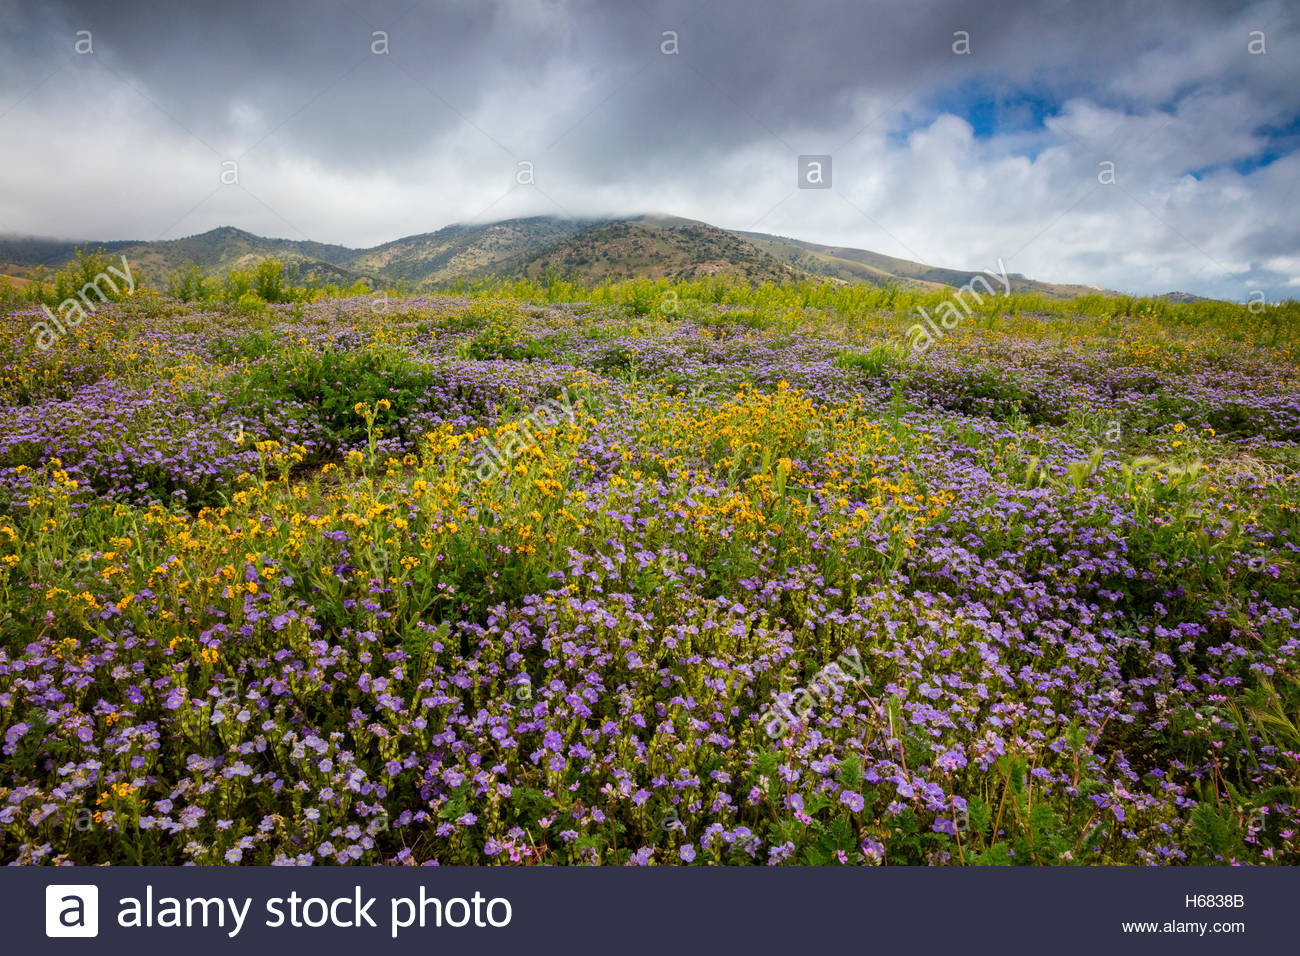 A carpet of yellow and violet spring wildflowers grow at the base of the Tehachapi Mountains in California, as an - Stock Image